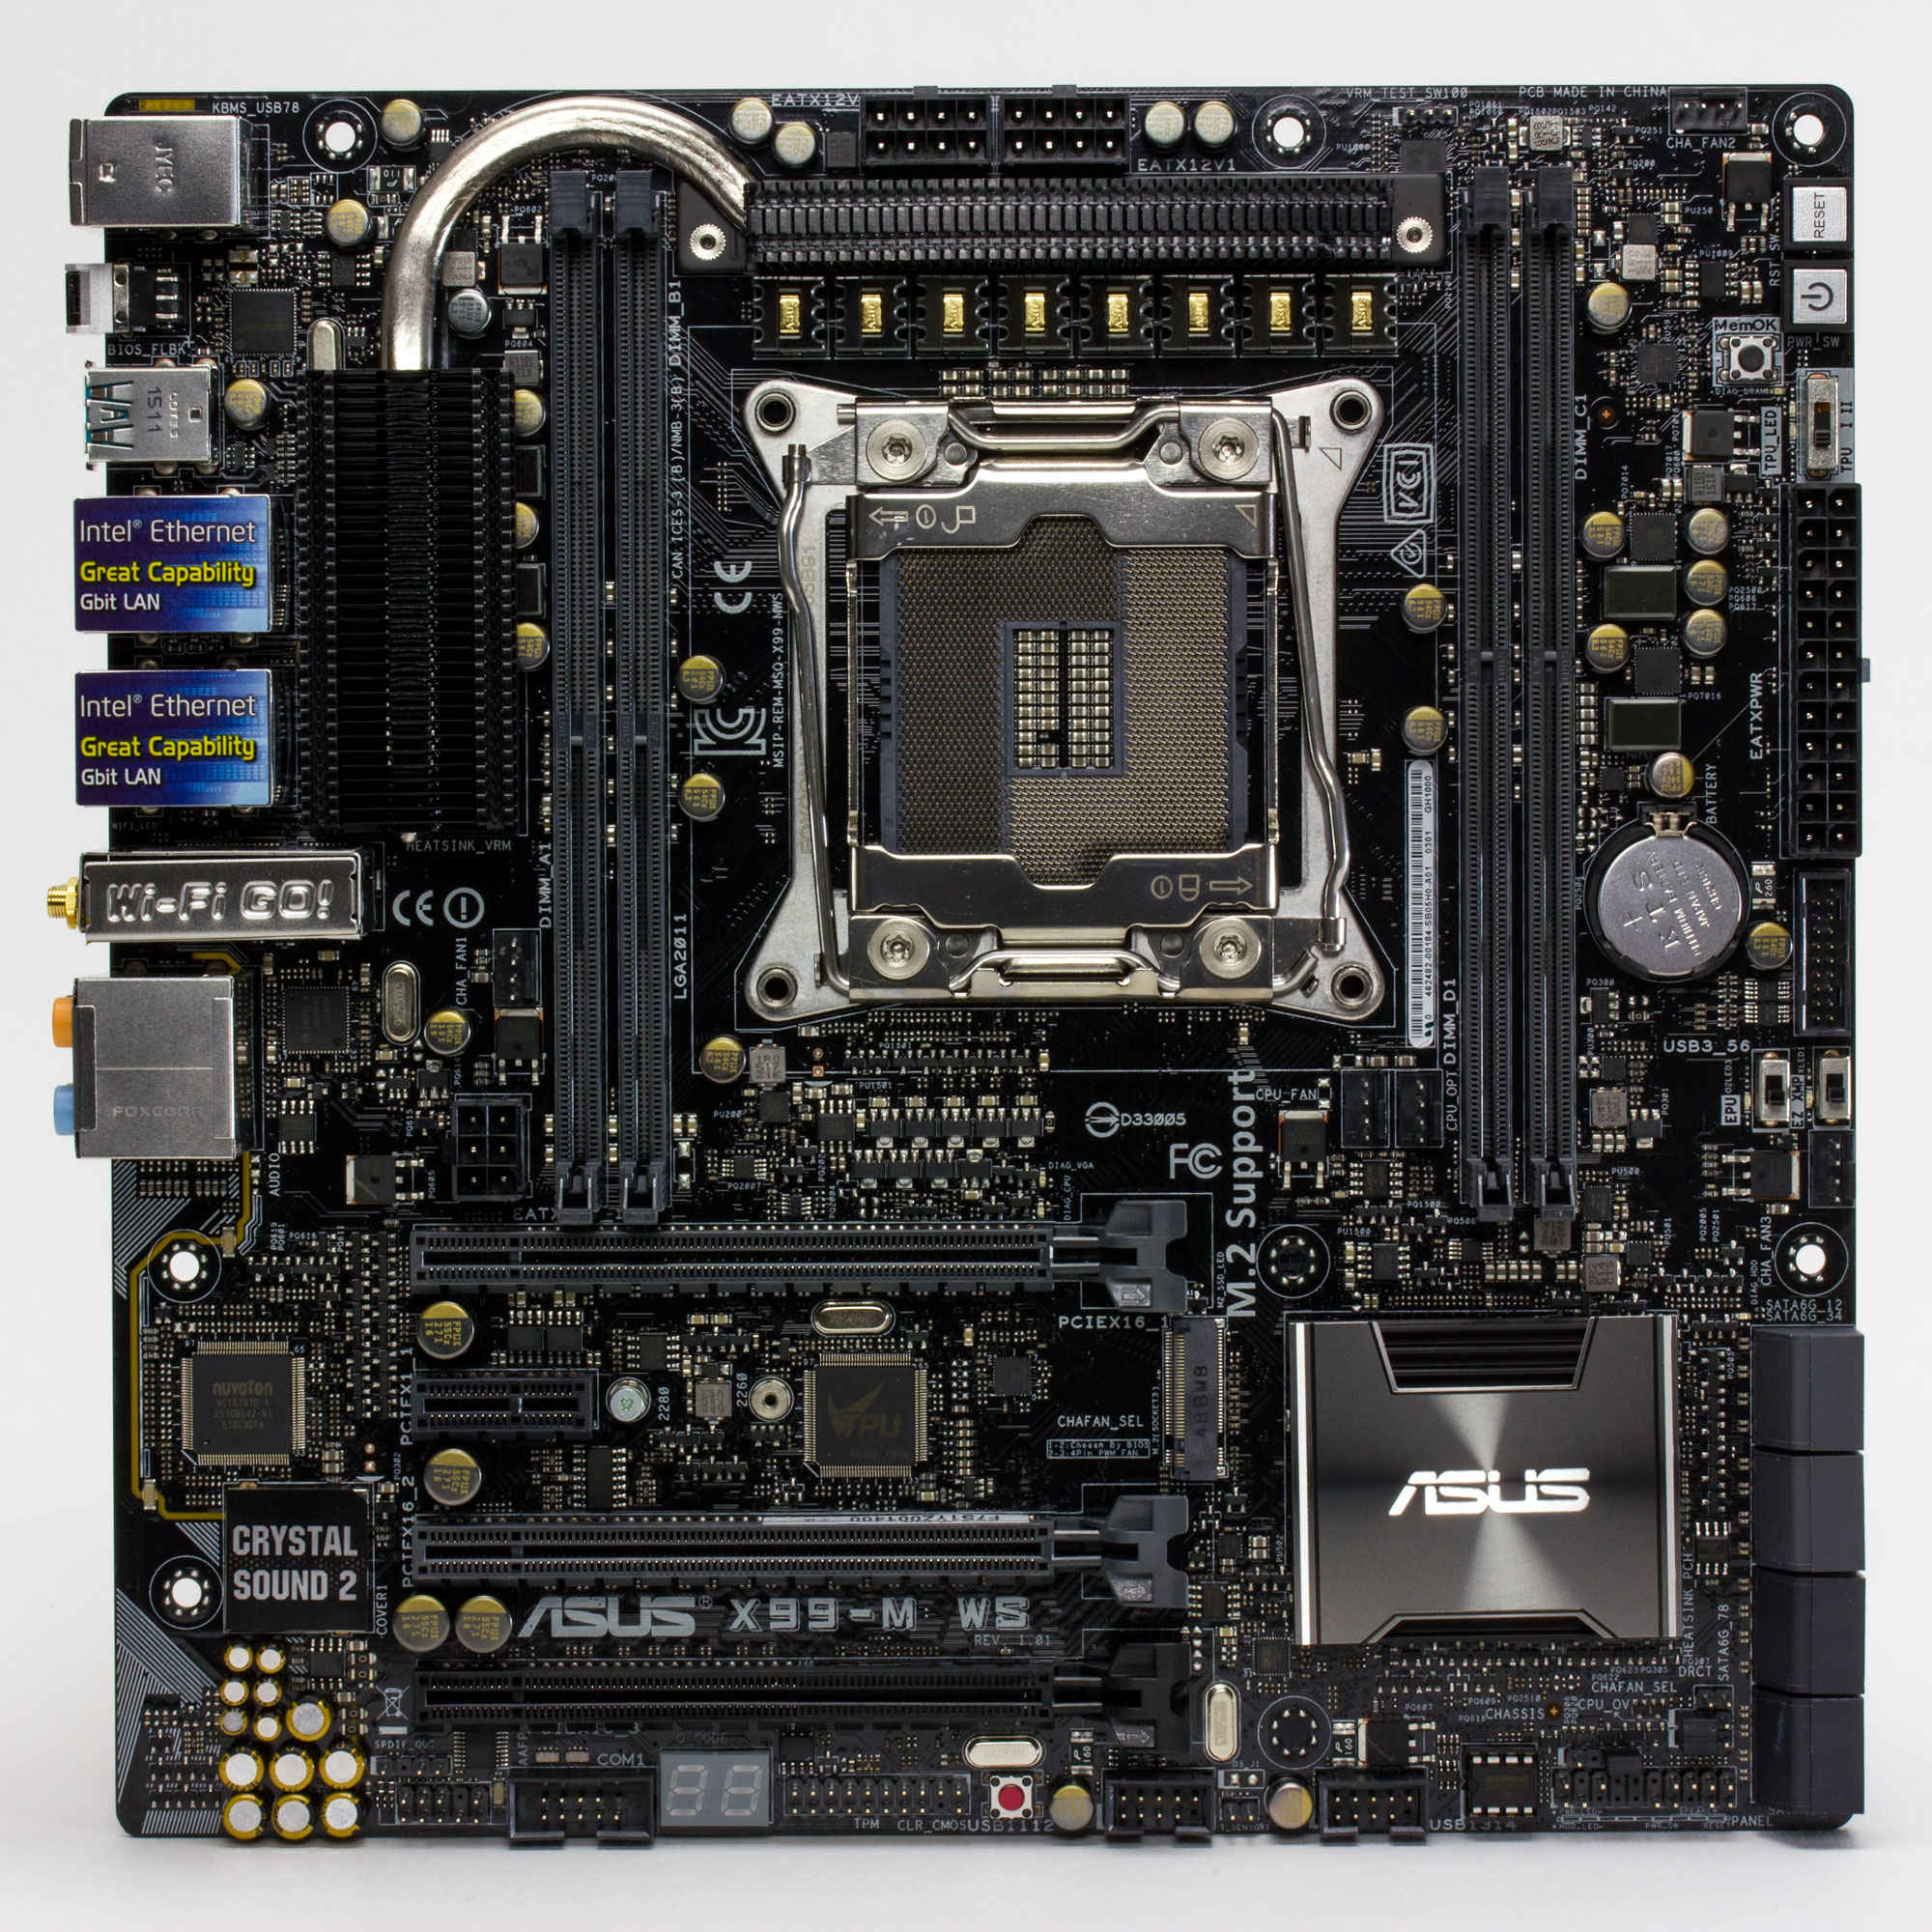 ASUS X99-M WS RST DRIVERS FOR WINDOWS DOWNLOAD